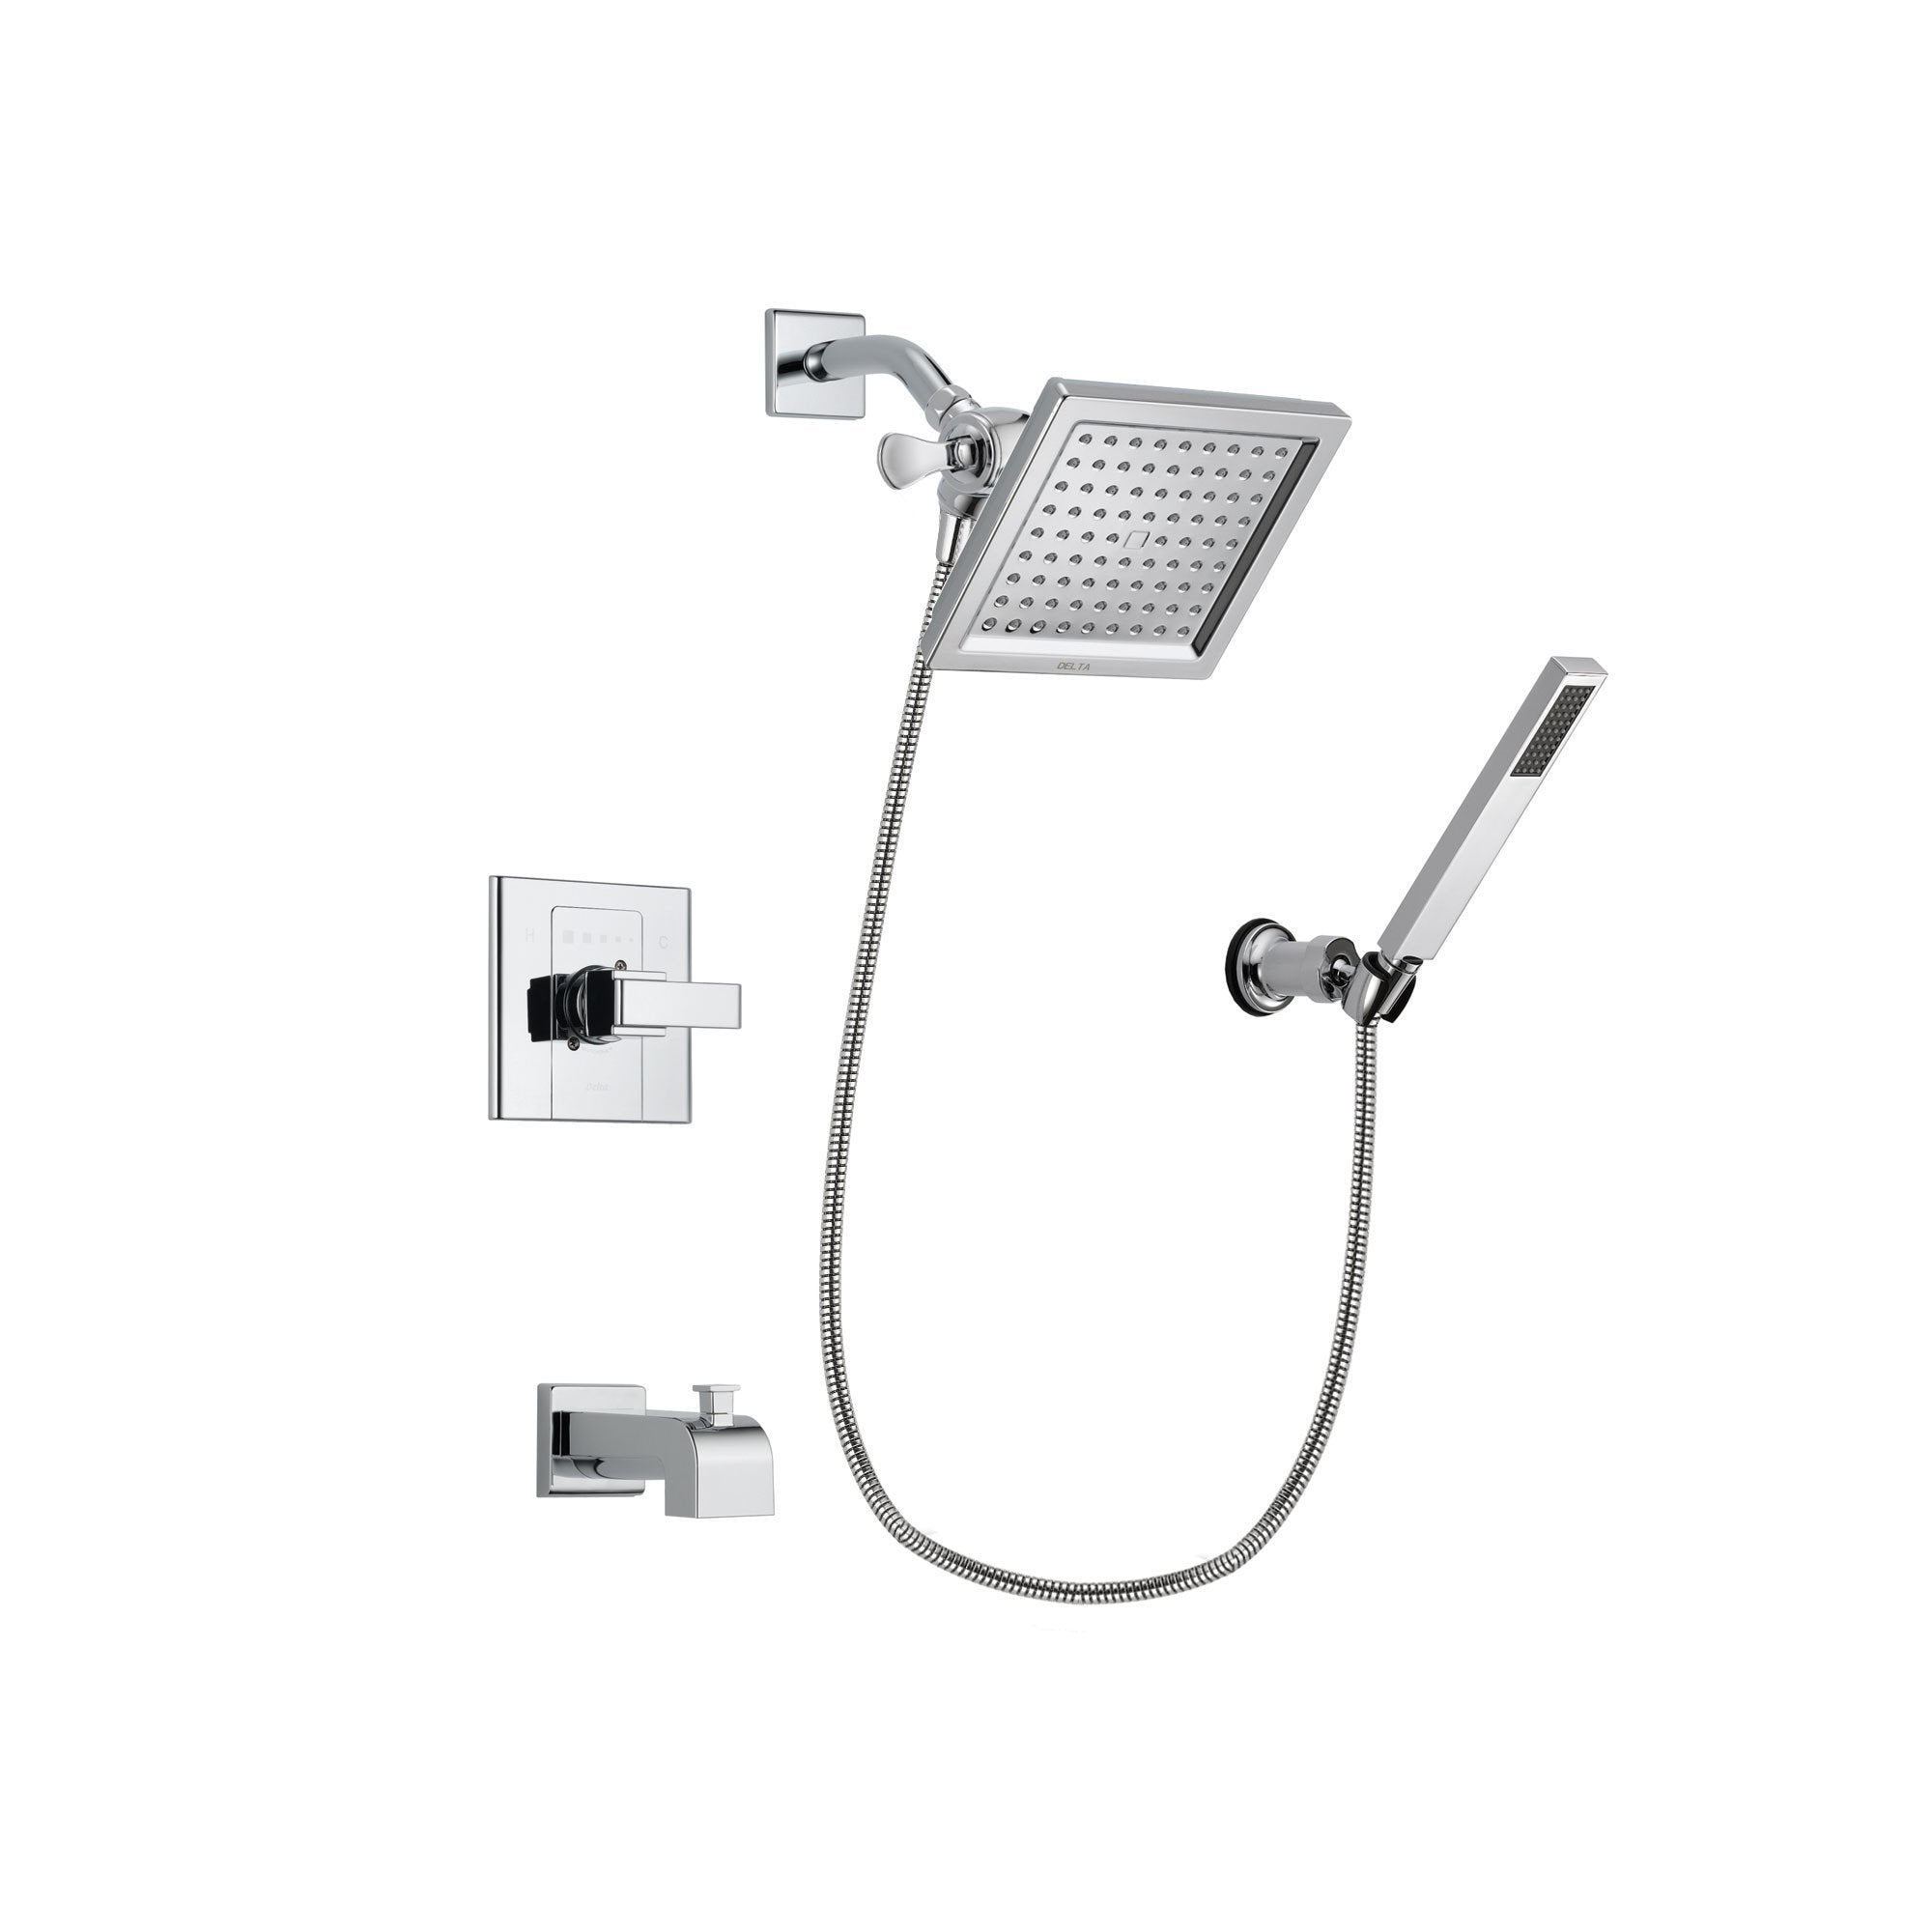 Delta Arzo Chrome Finish Tub and Shower Faucet System Package with 6.5-inch Square Rain Showerhead and Modern Handheld Shower Spray with Wall Bracket and Hose Includes Rough-in Valve and Tub Spout DSP0123V